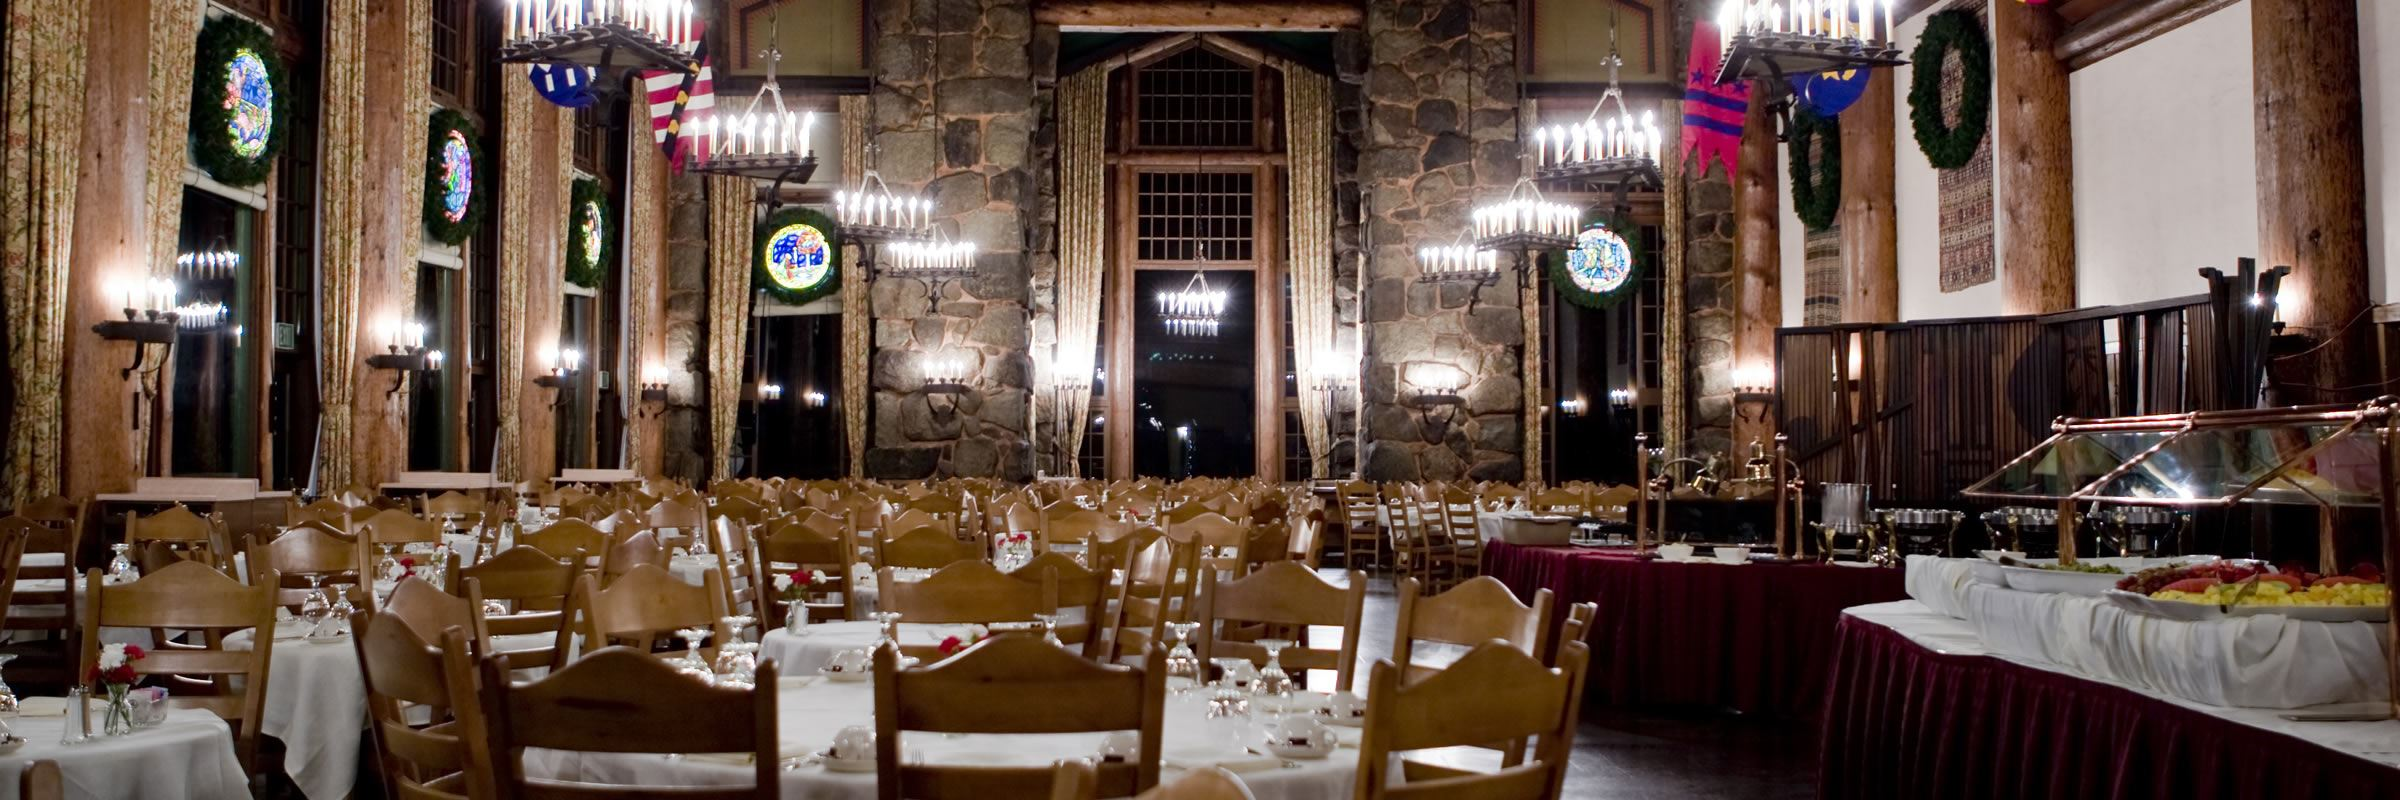 The Magnificent Dining Hall Of The Majestic Yosemite Hotel